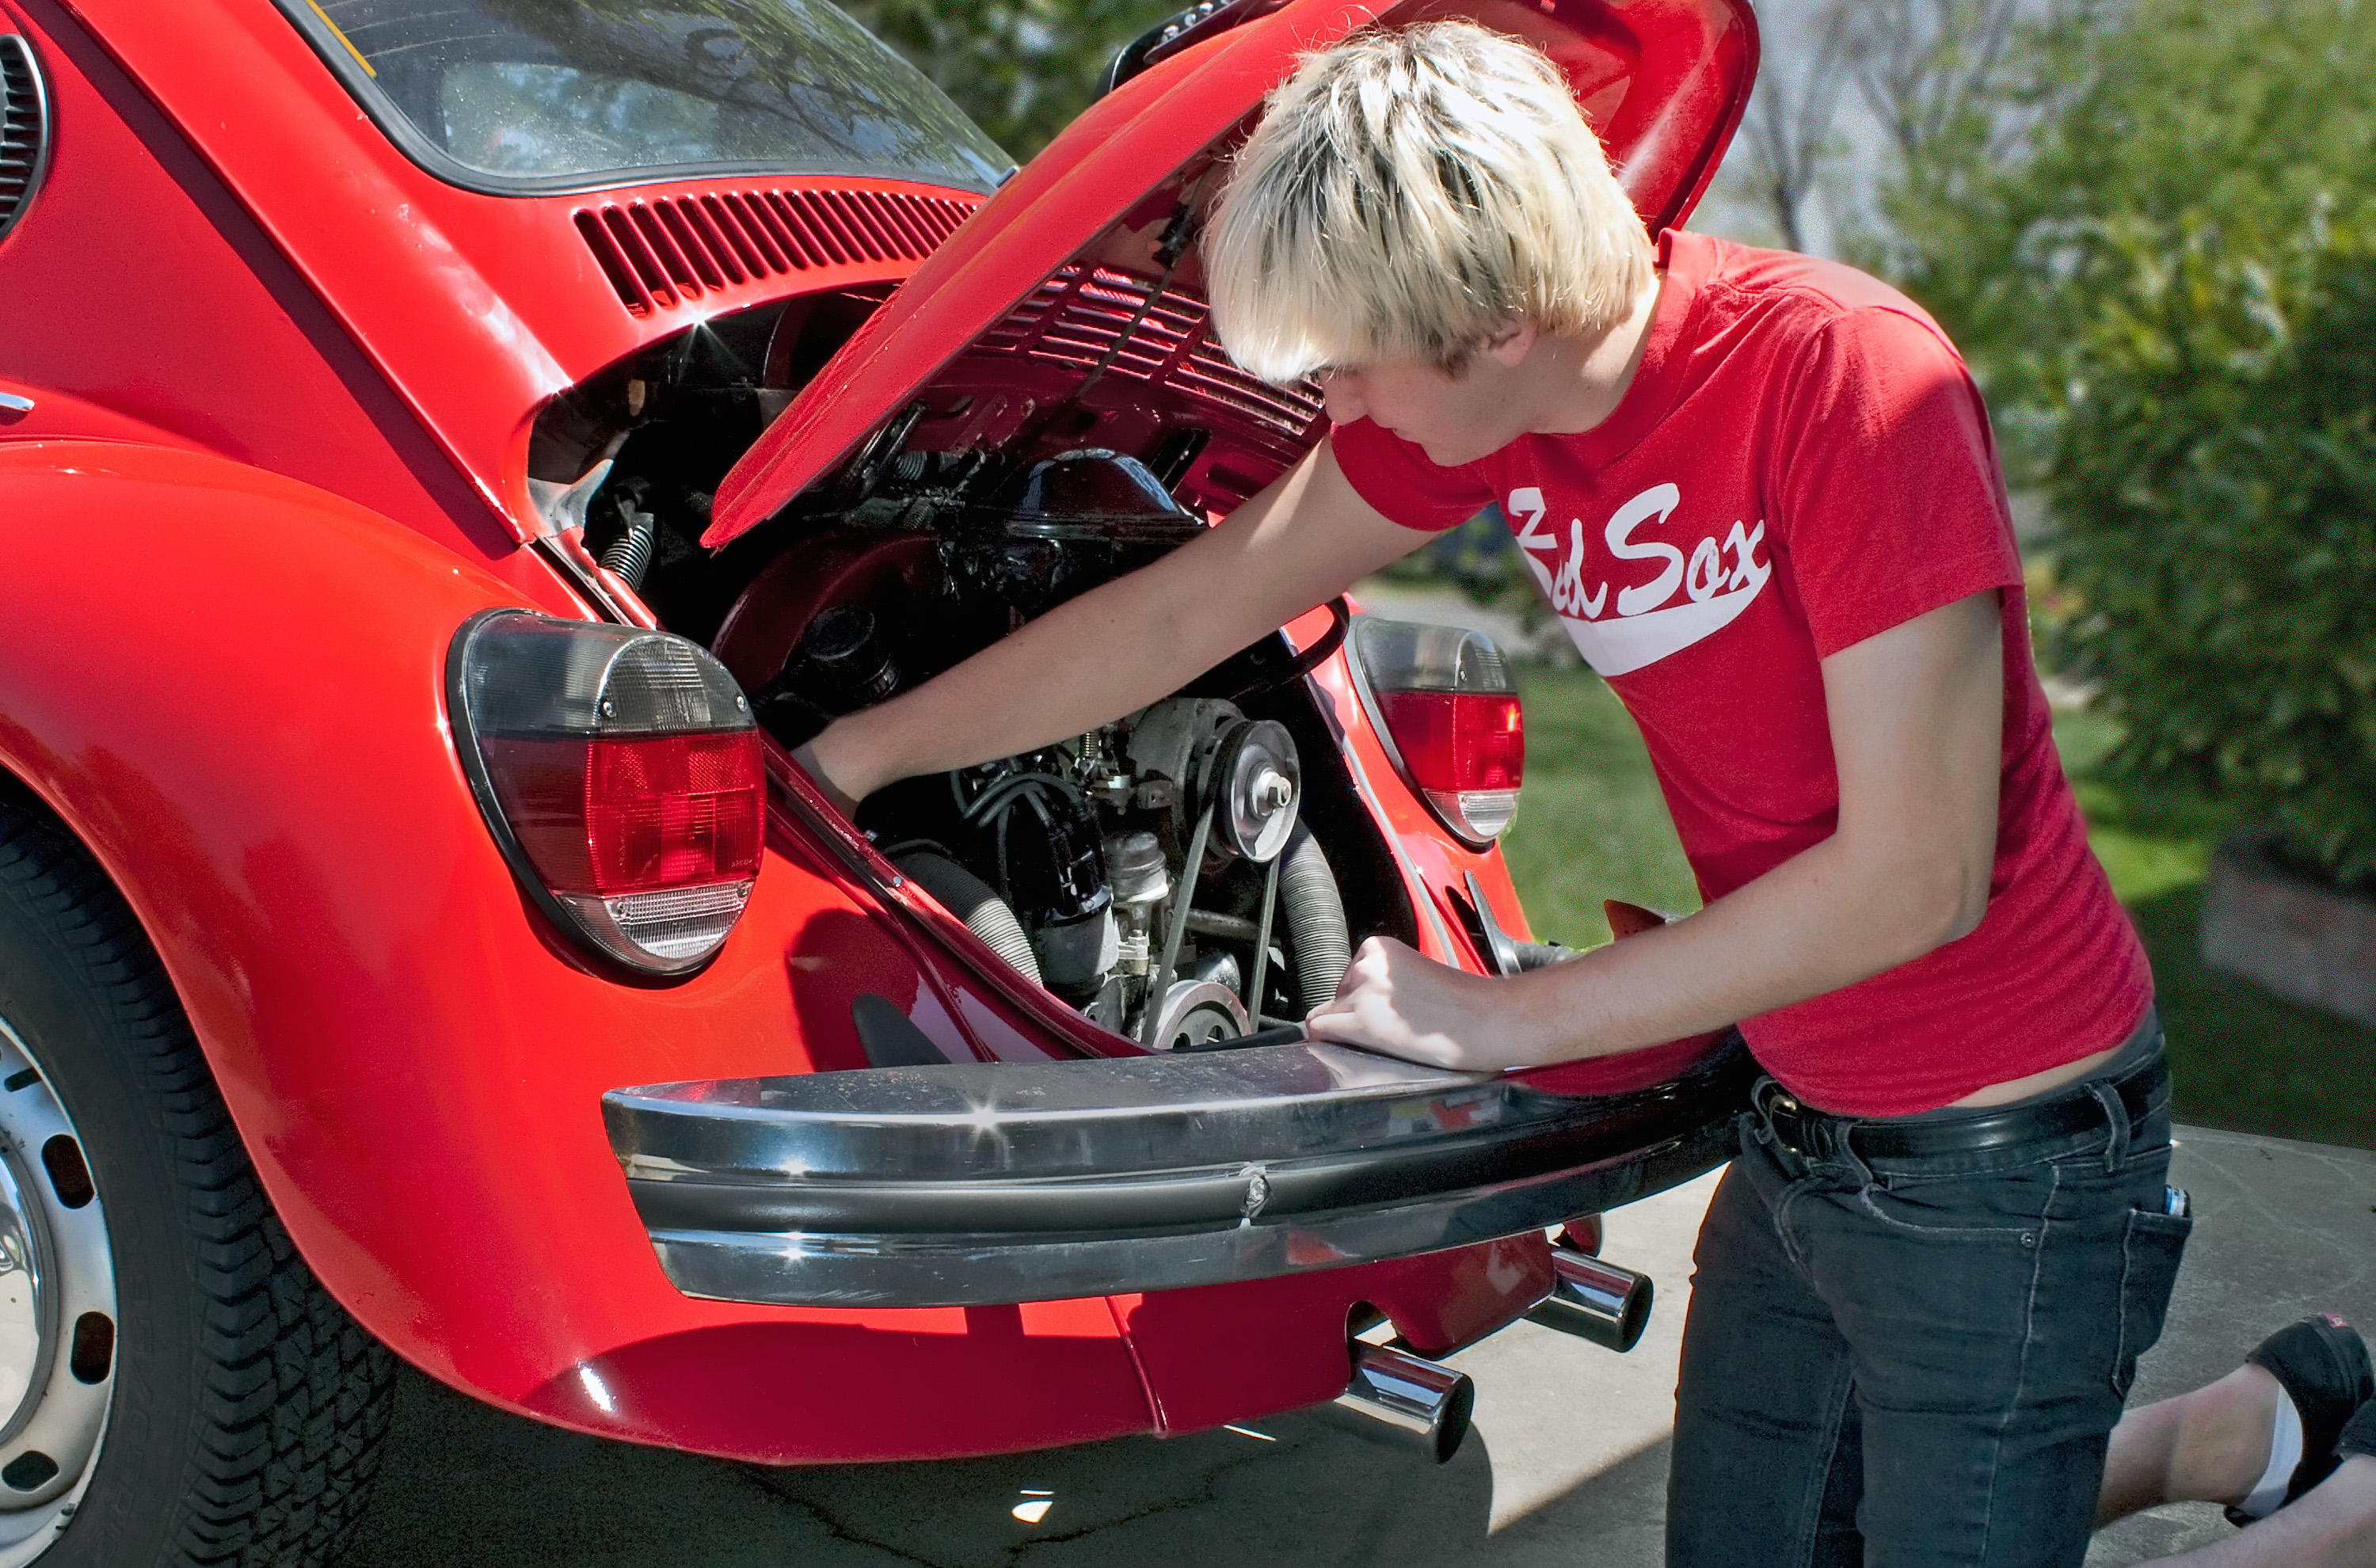 Unfixing' VW cars: A new trend in emissions tampering?